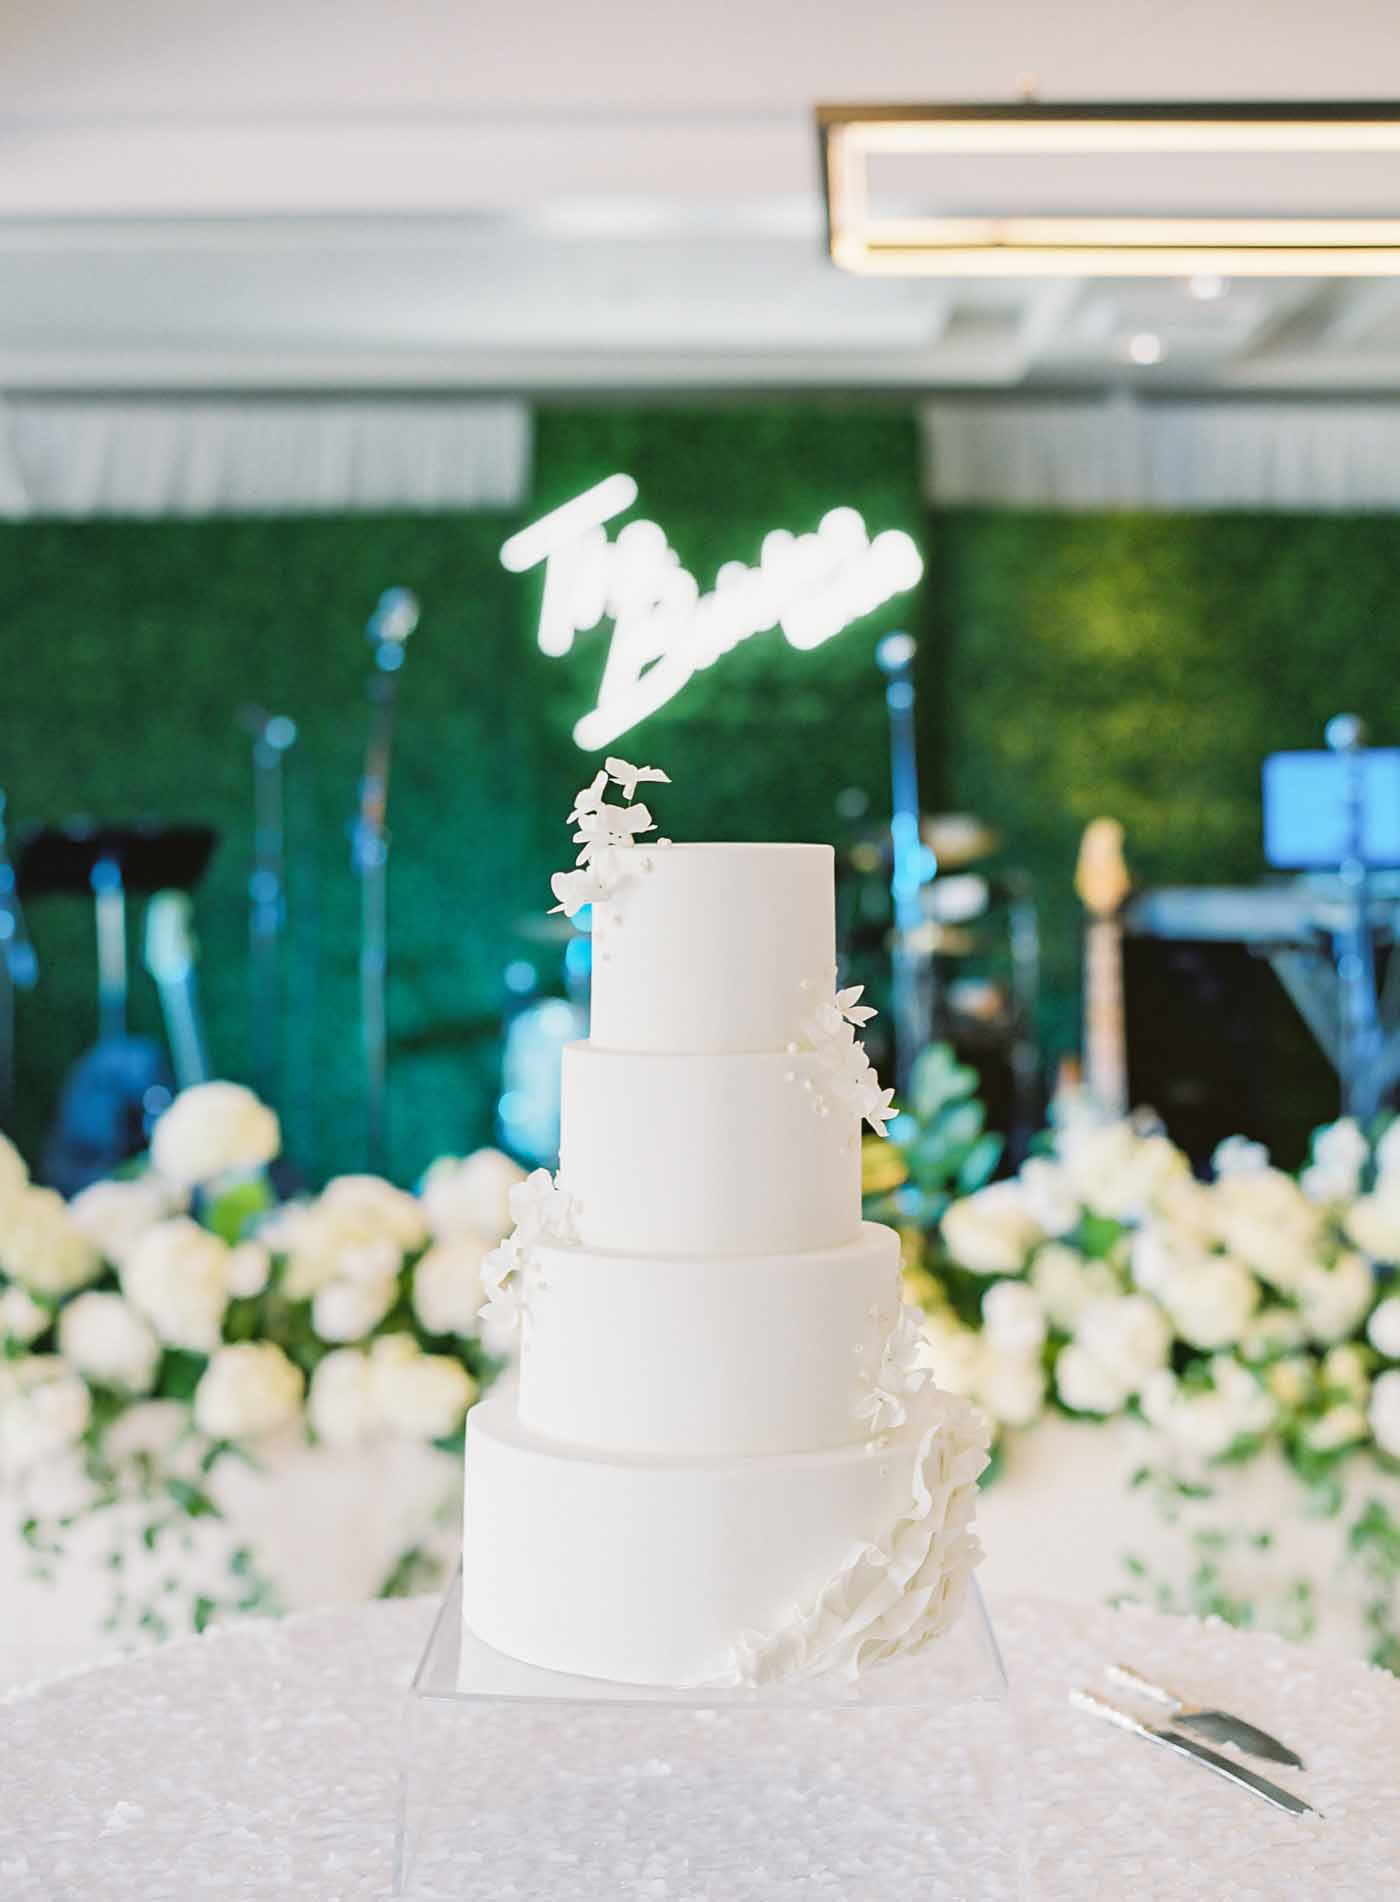 A White wedding cake on the dance floor in front of the decorated band backdrop with custom wedding signage